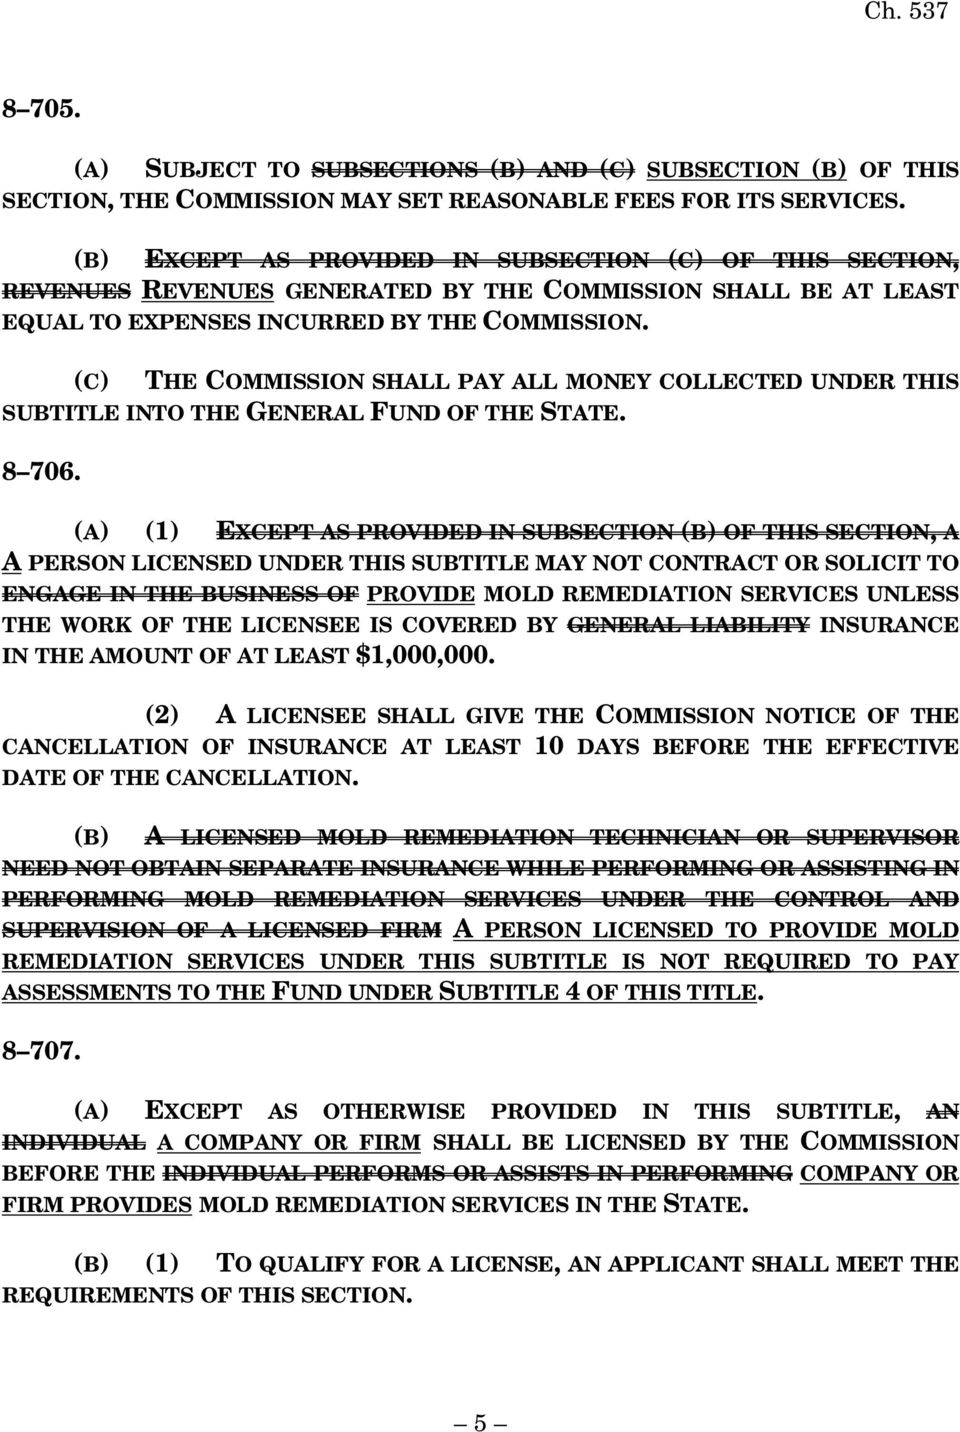 (C) THE COMMISSION SHALL PAY ALL MONEY COLLECTED UNDER THIS SUBTITLE INTO THE GENERAL FUND OF THE STATE. 8 706.